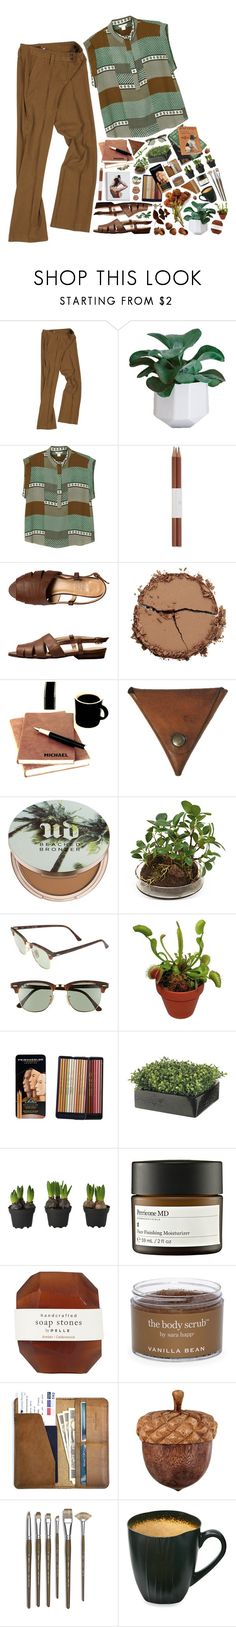 """""""words never once cut me down"""" by tanja-bp ❤ liked on Polyvore featuring Vereteno, Monki, Faber-Castell, Chantecaille, Palila, Urban Decay, Distinctive Designs, Ray-Ban, CO and ...Lost"""